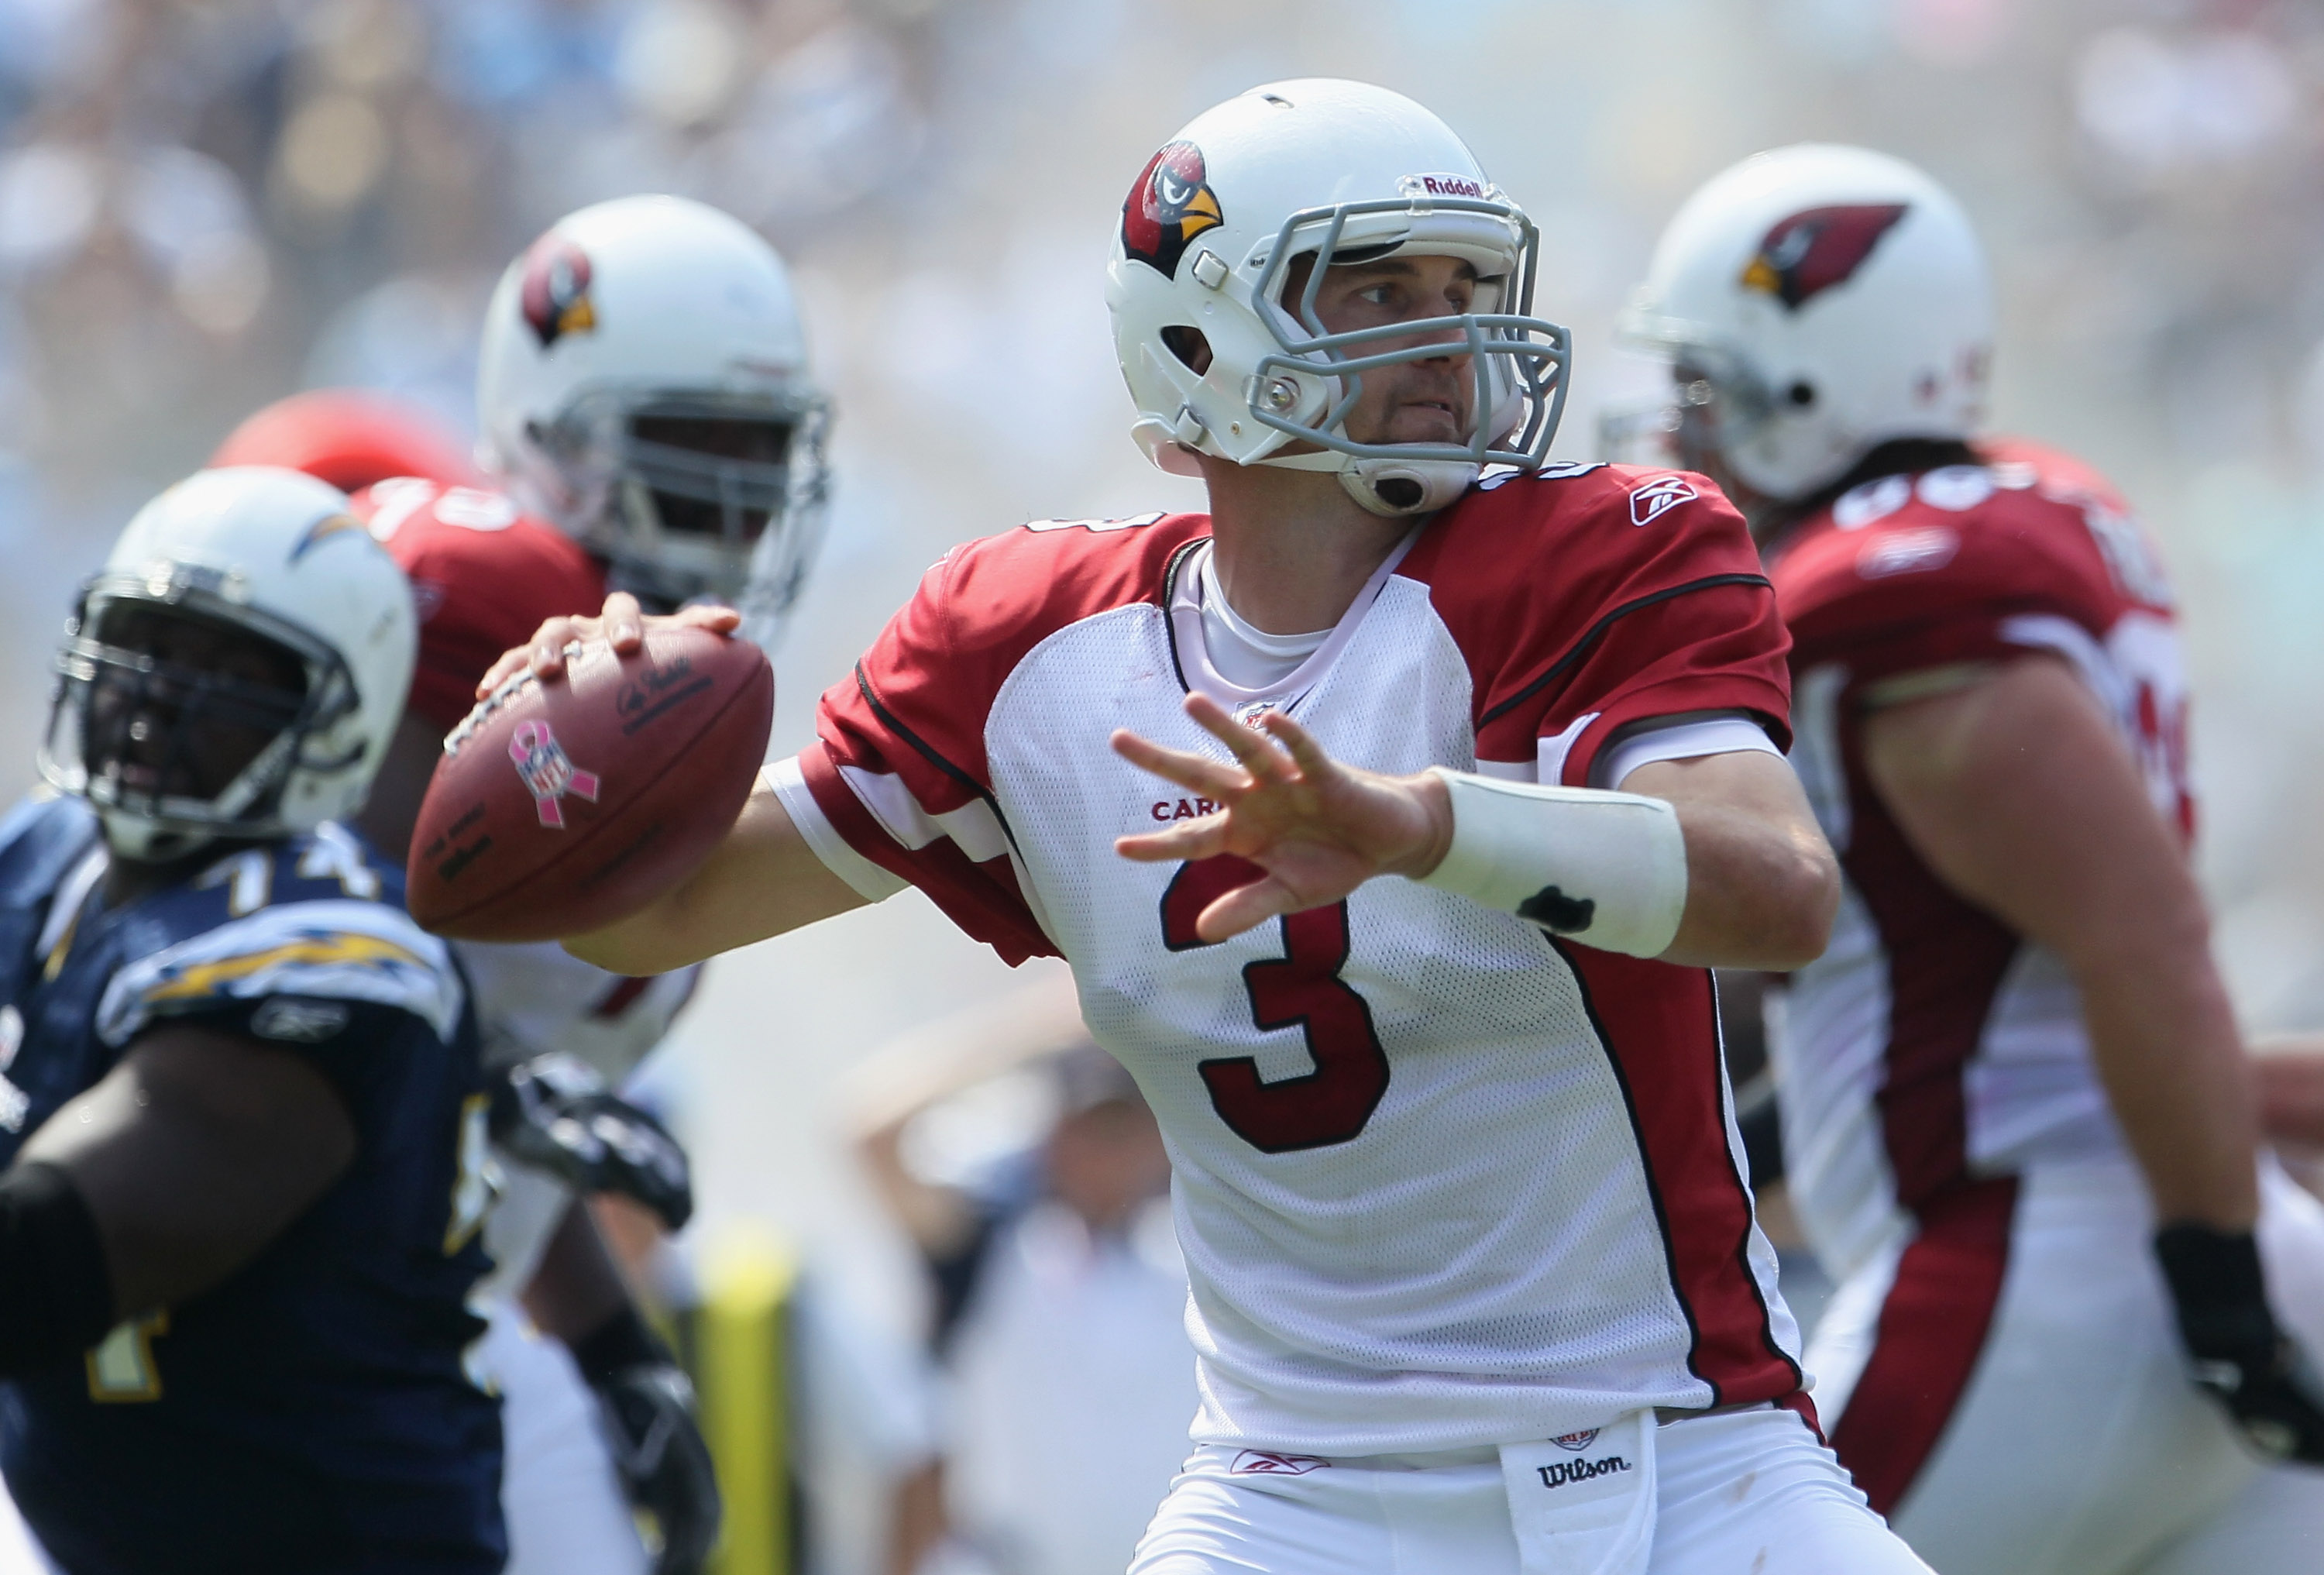 SAN DIEGO - OCTOBER 03:  Quarterback Derek Anderson #3 of the Arizona Cardinals drops back to pass in the first quarter against the San Diego Chargers at Qualcomm Stadium on October 3, 2010 in San Diego, California. The Chargers defeated the Cardinals 41-